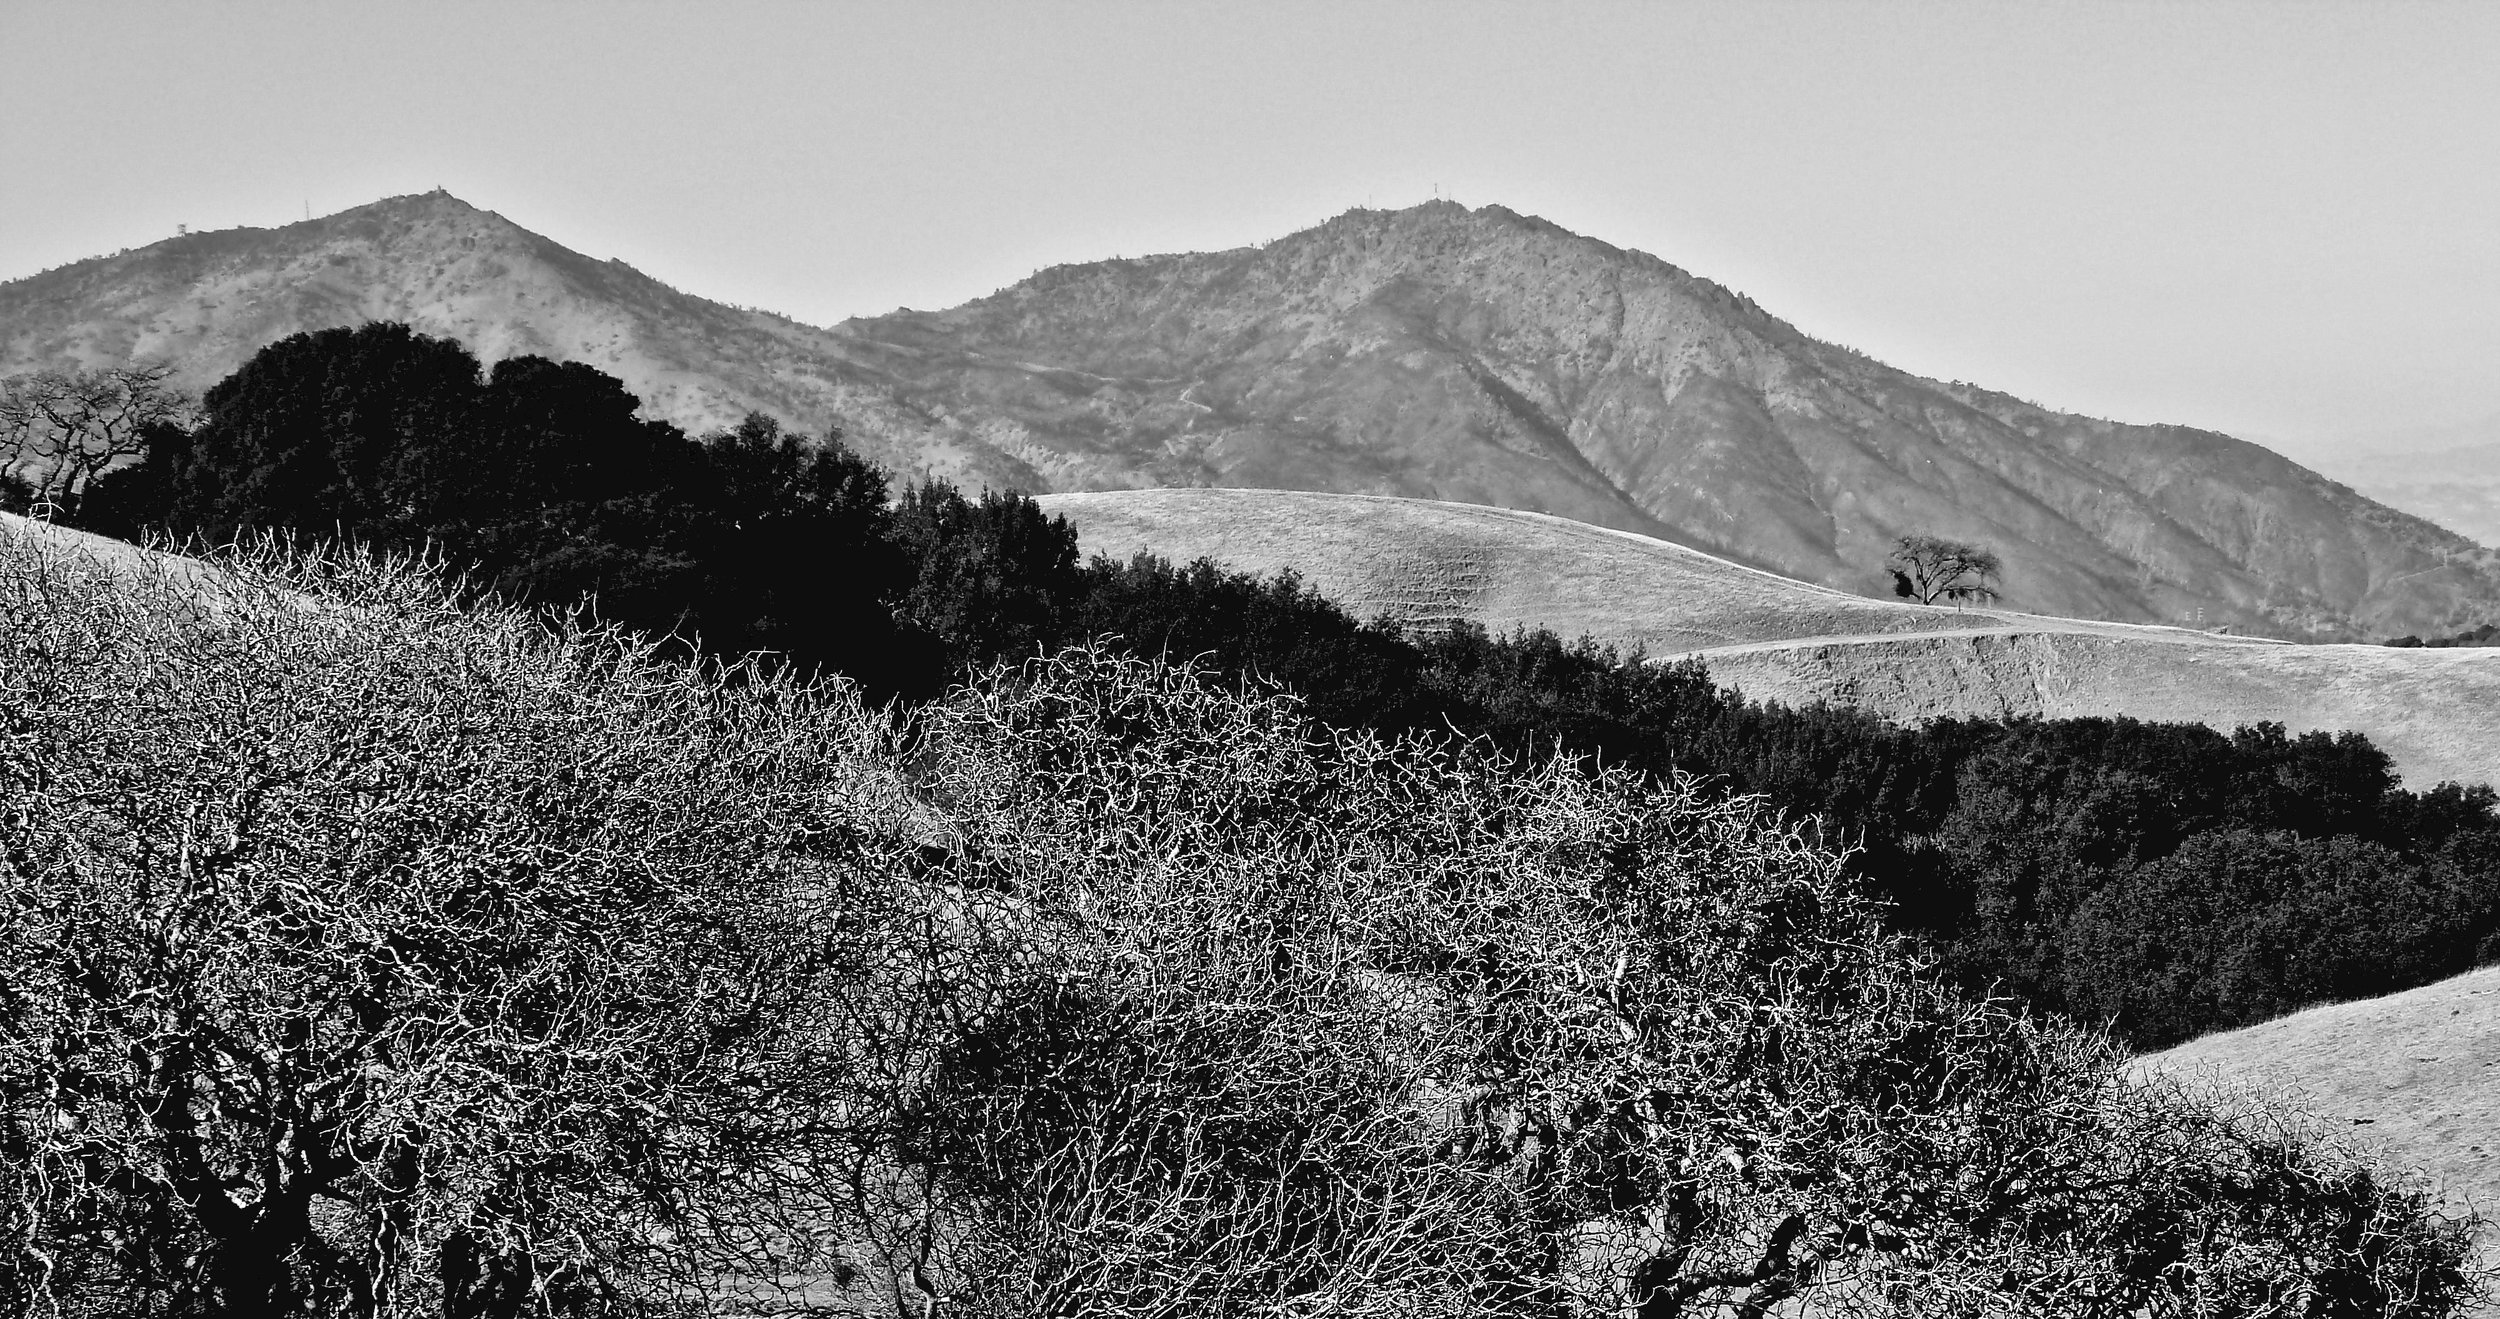 The view from Morgan Territory Regional Preserve.